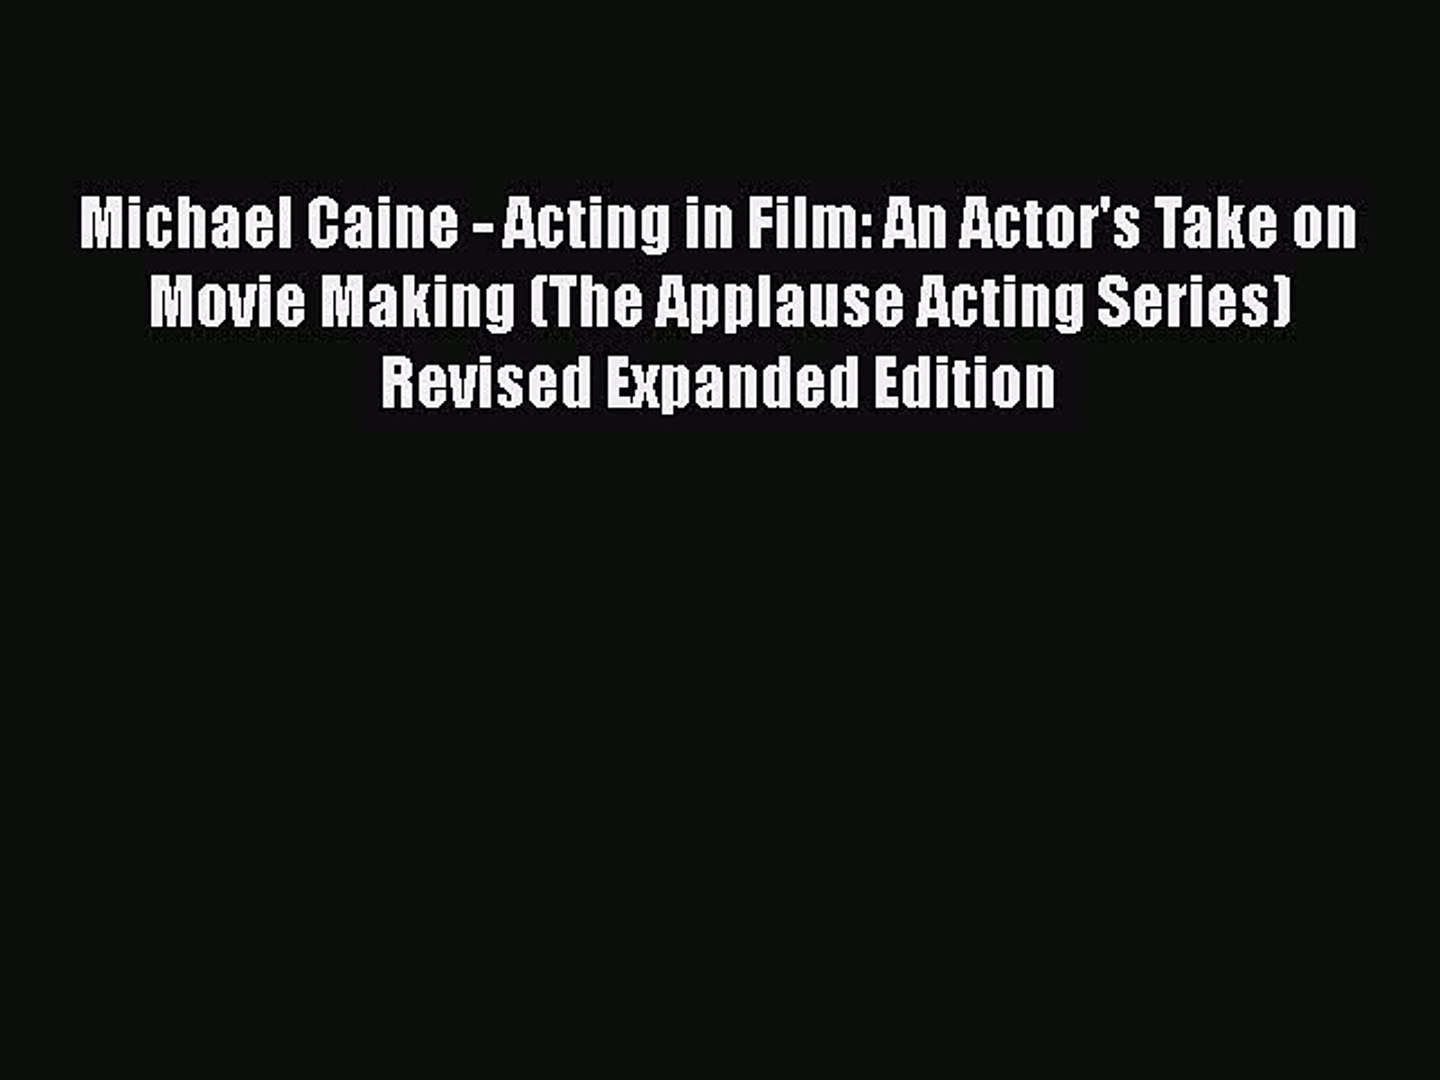 Download Michael Caine - Acting in Film: An Actor's Take on Movie Making (The Applause Acting